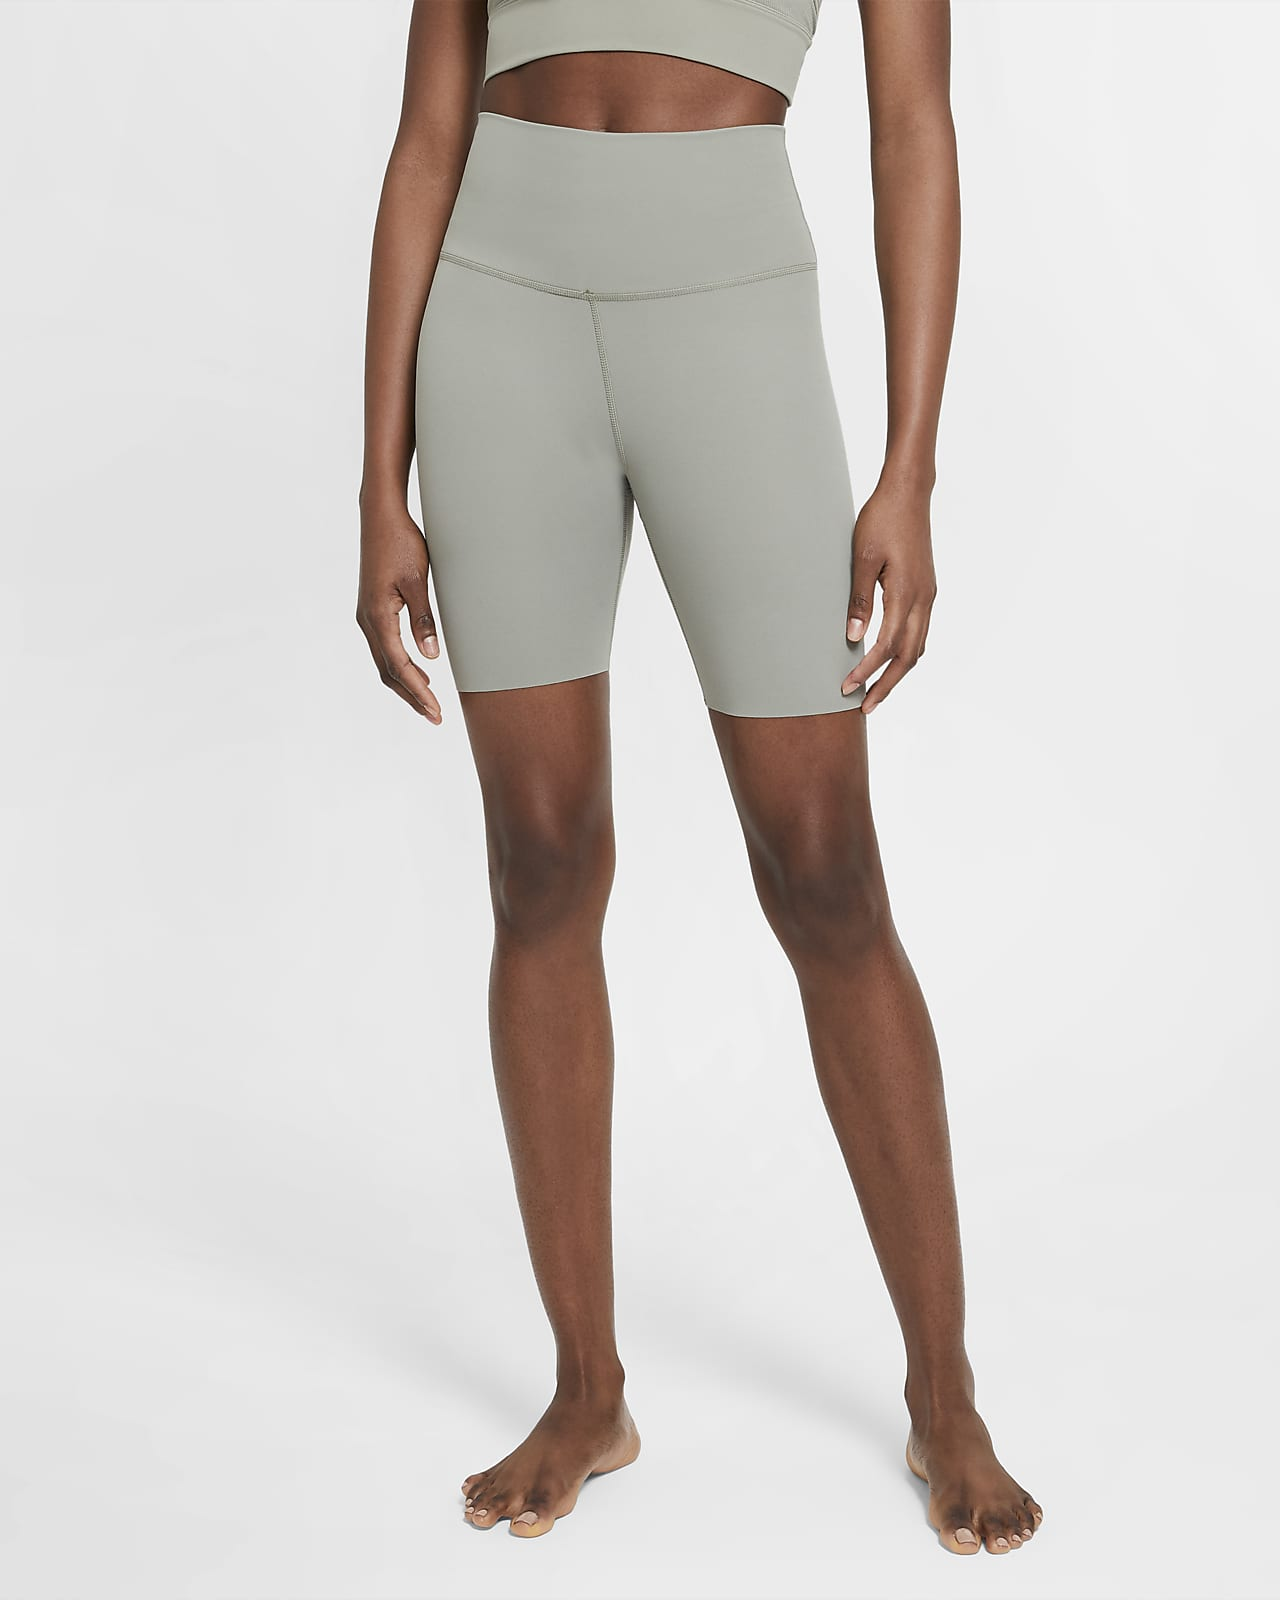 Nike Yoga Luxe Women's Shorts